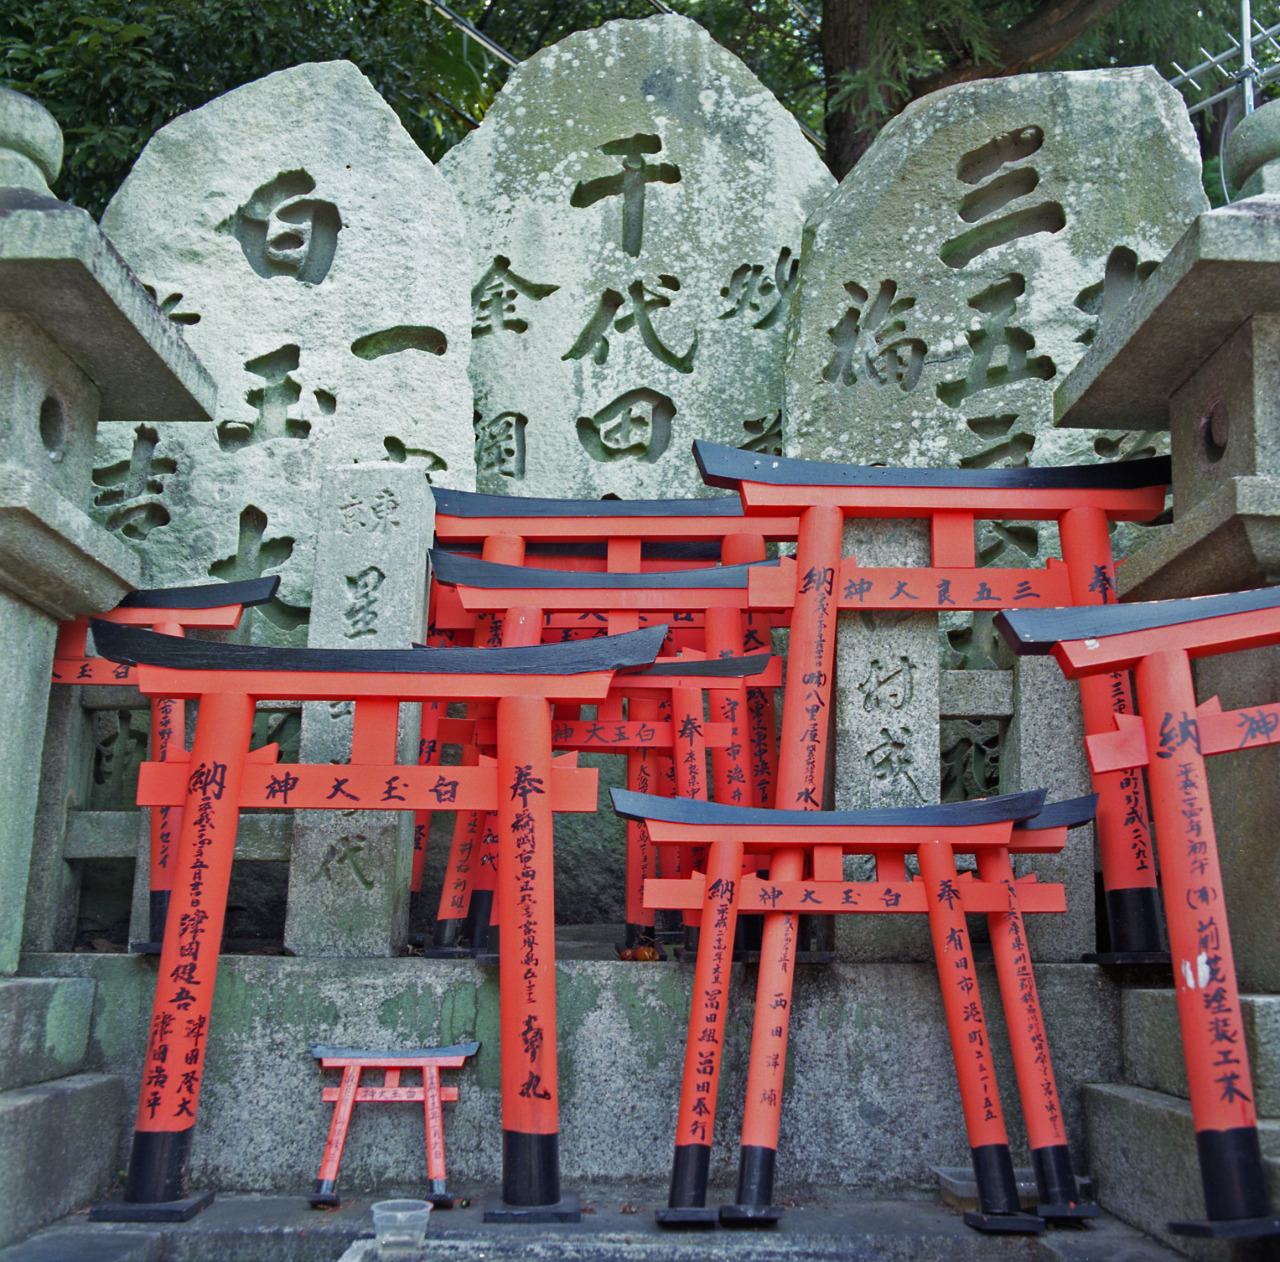 Shrine, Fushimi Inari TaishaView Post